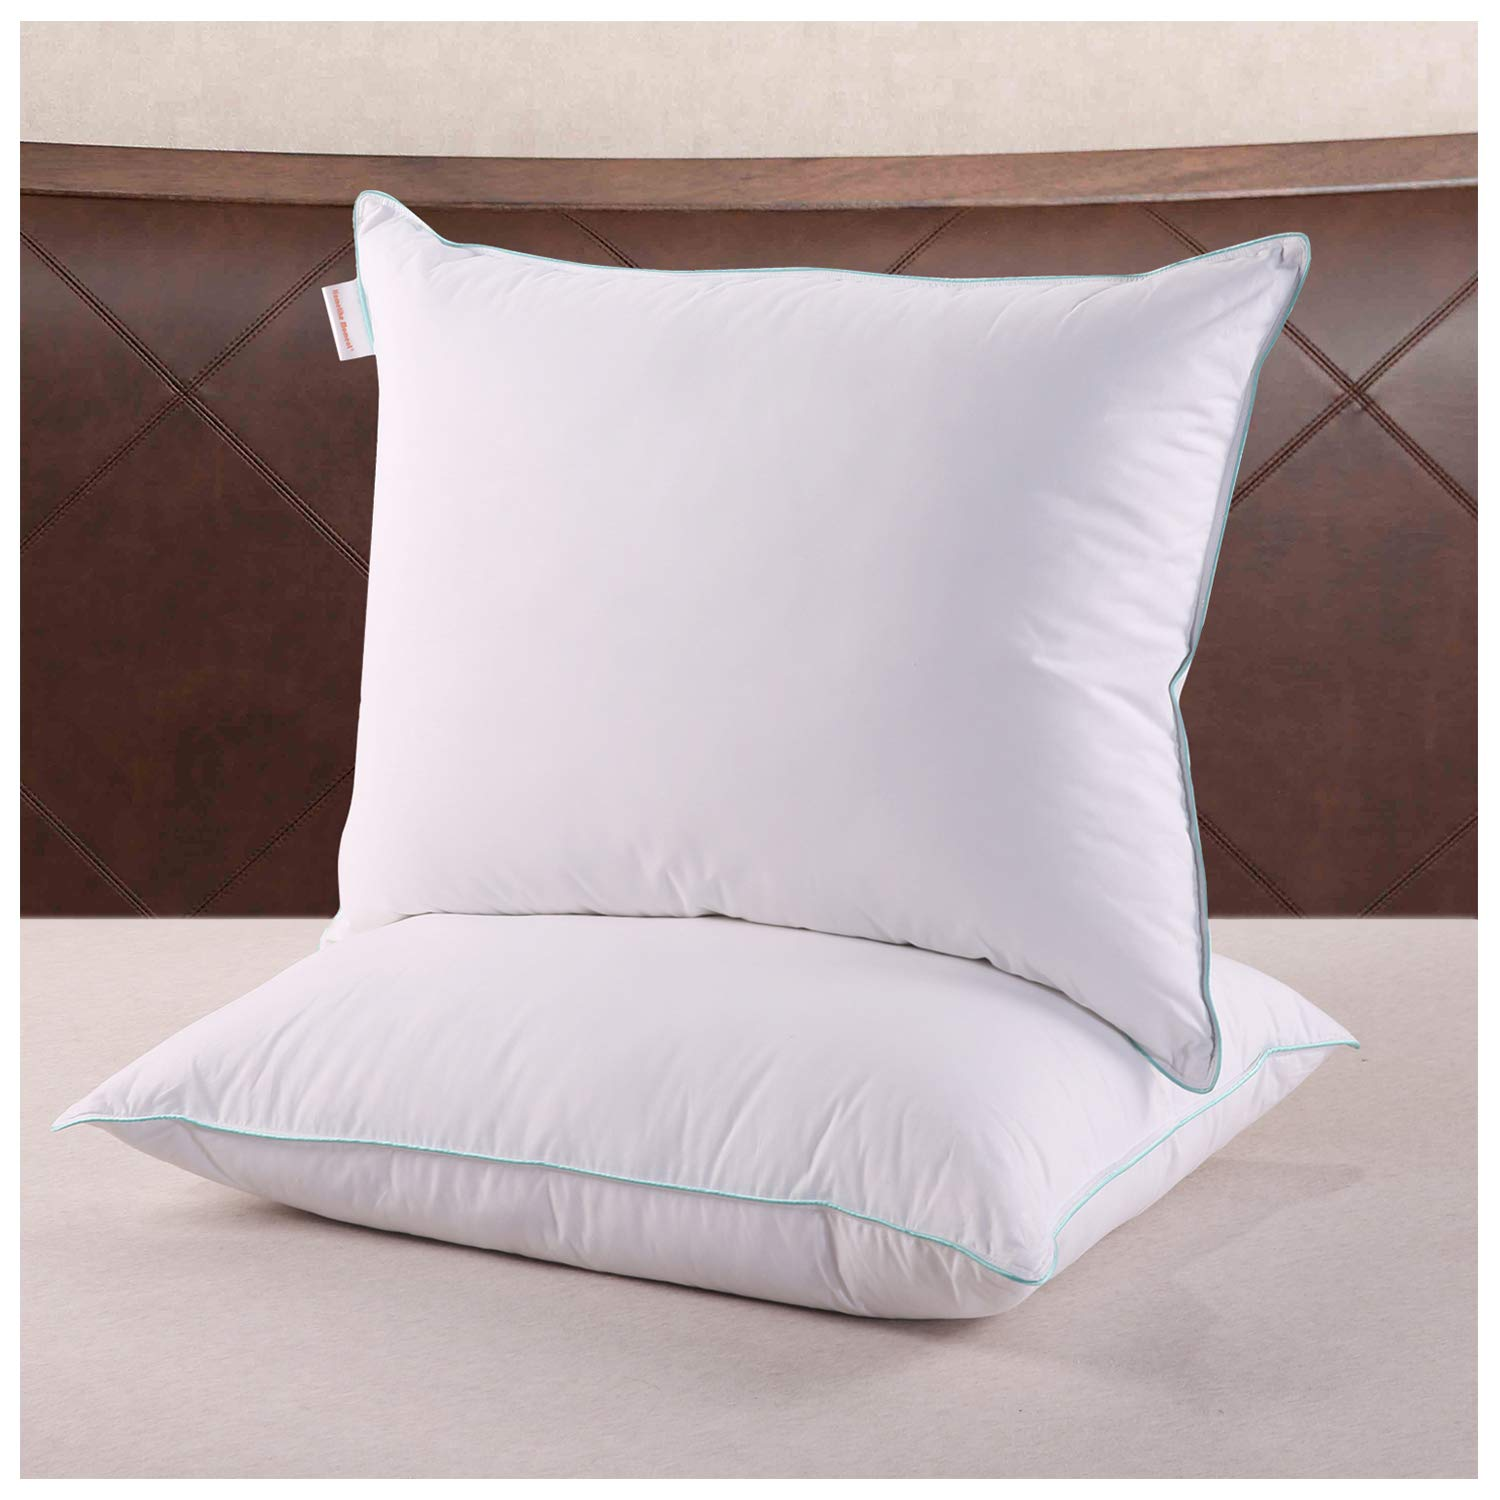 Homelike Moment Feather Down Pillows for Sleeping - 2 Pack Feather Bed Pillow King Size Pillows Set of 2 100% Cotton Fabirc 20x36 Inch